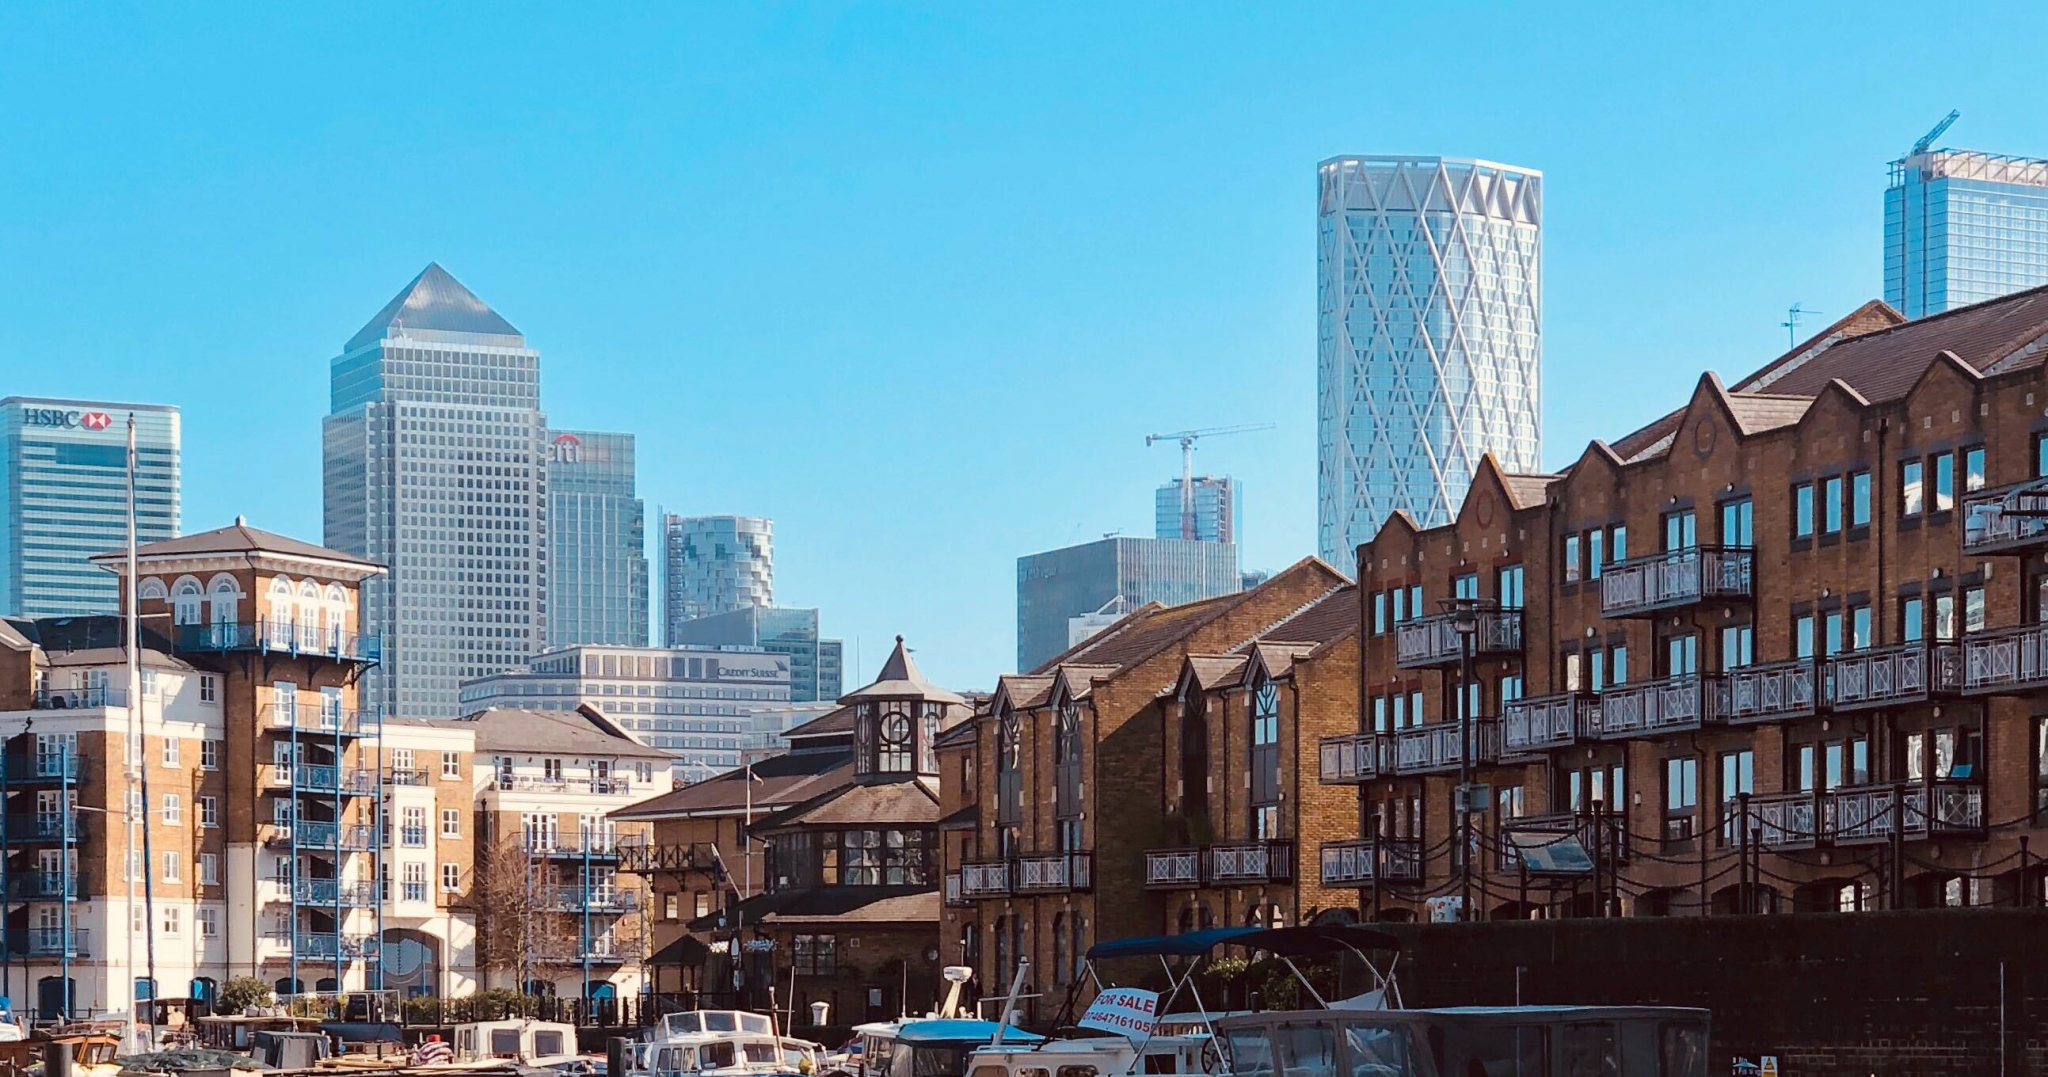 New homes and buildings in Canary Wharf, East London